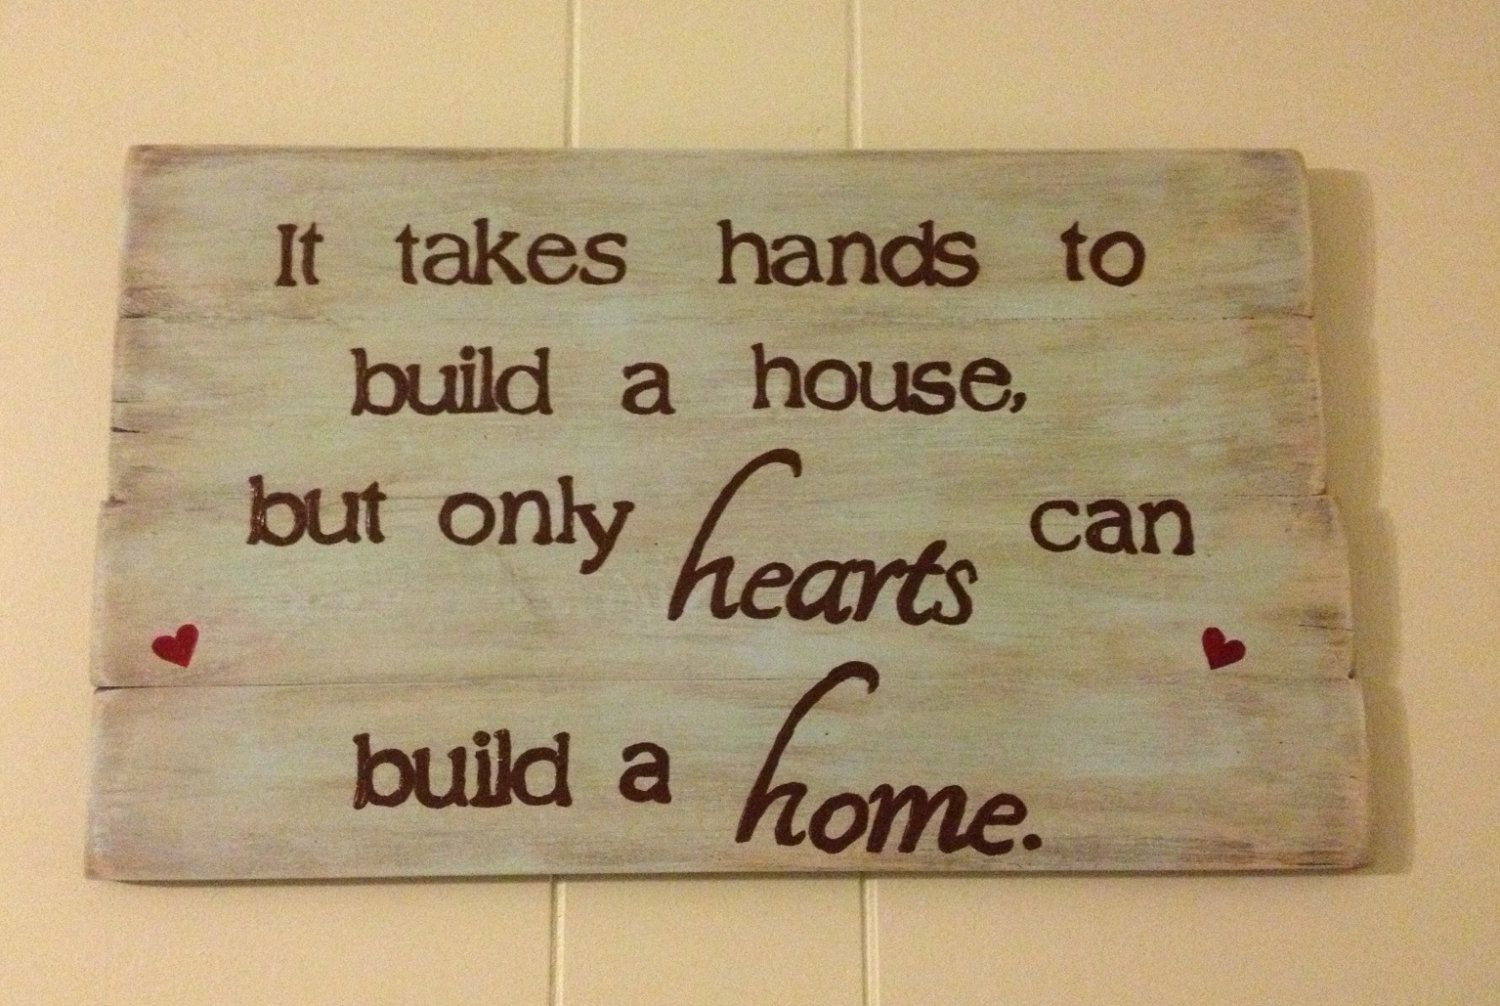 Barn Wood Wall Hanging: It Takes Hands To Build A House But Only Hearts Can